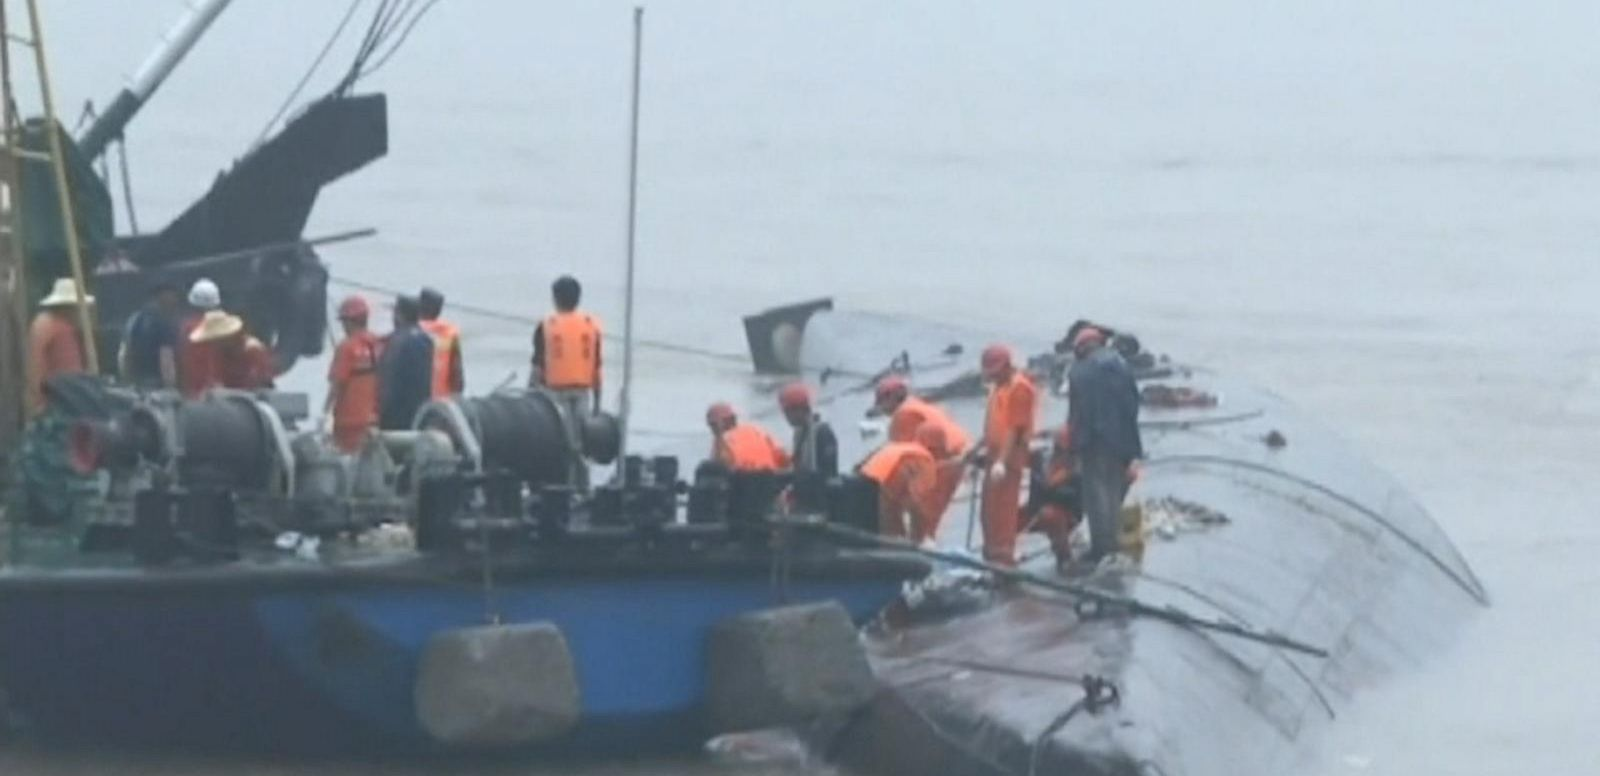 VIDEO: Chinese Weather Threatens Boat Accident Rescue Efforts